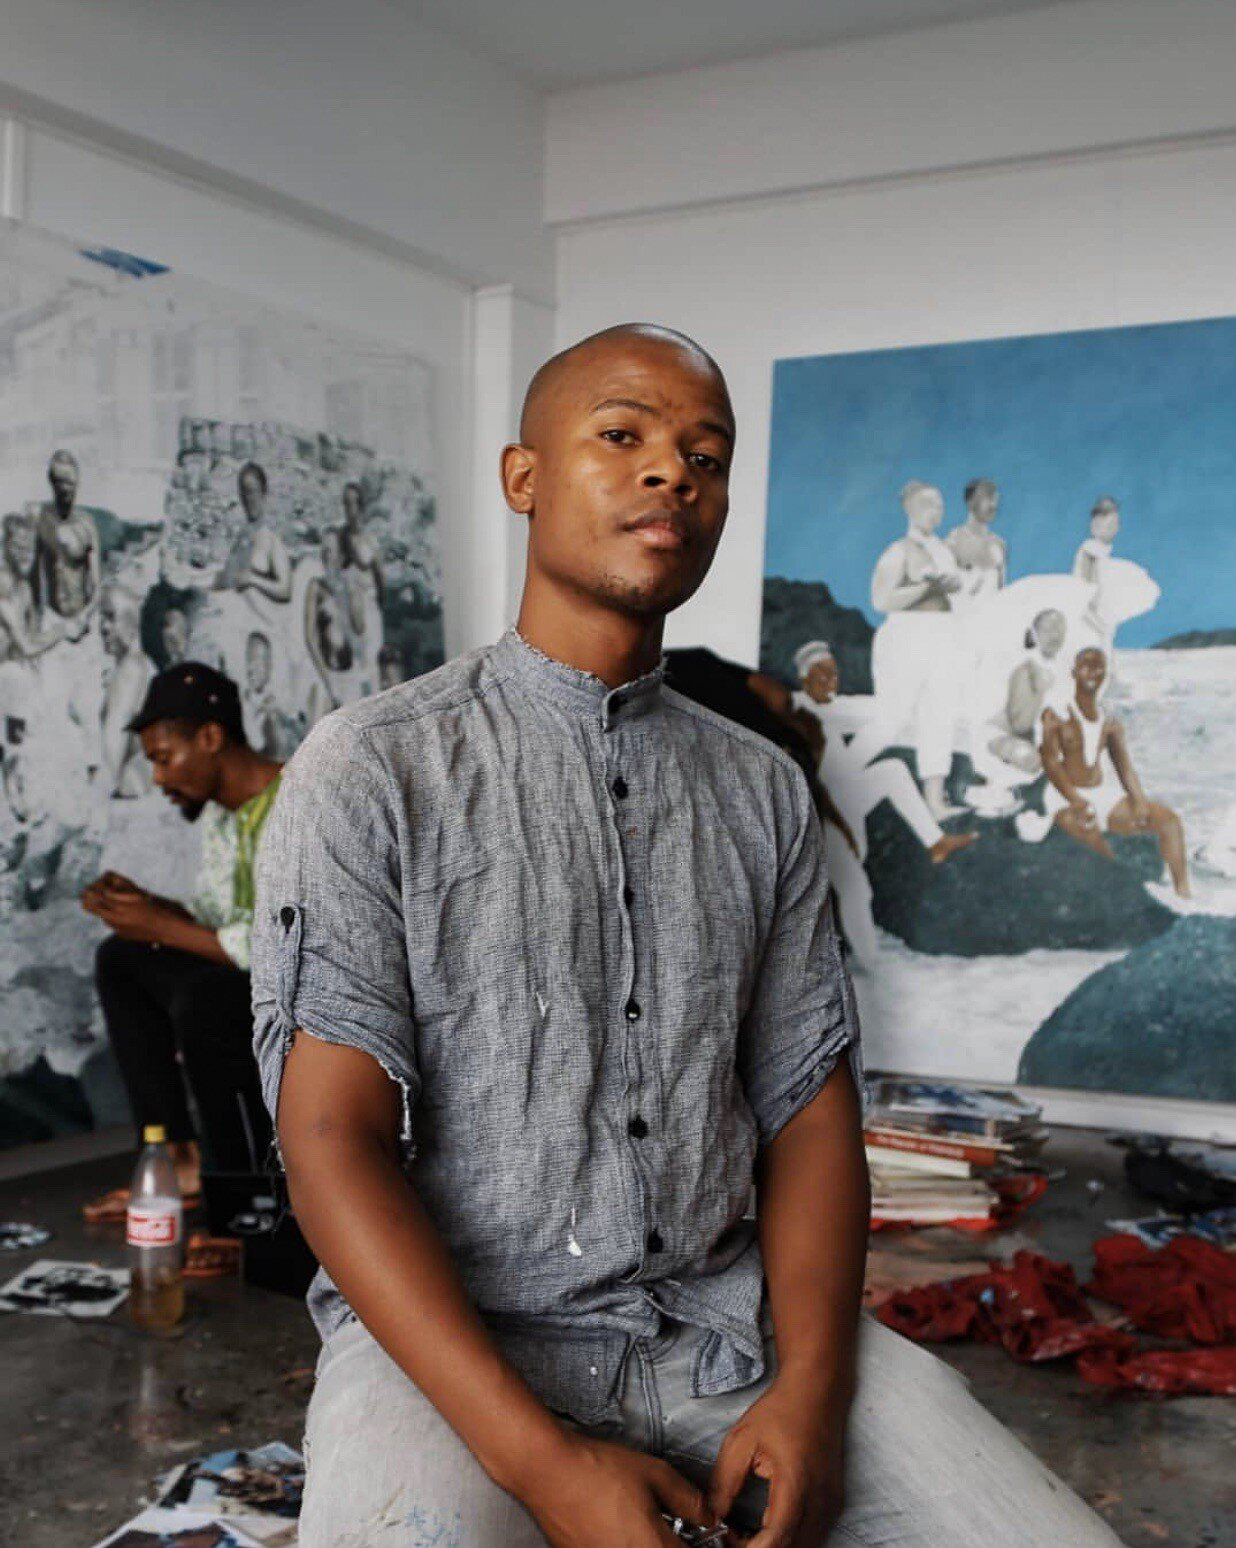 Cinga Samson is currently represented by the Perrotin International Gallery and the Blank Project South African Gallery